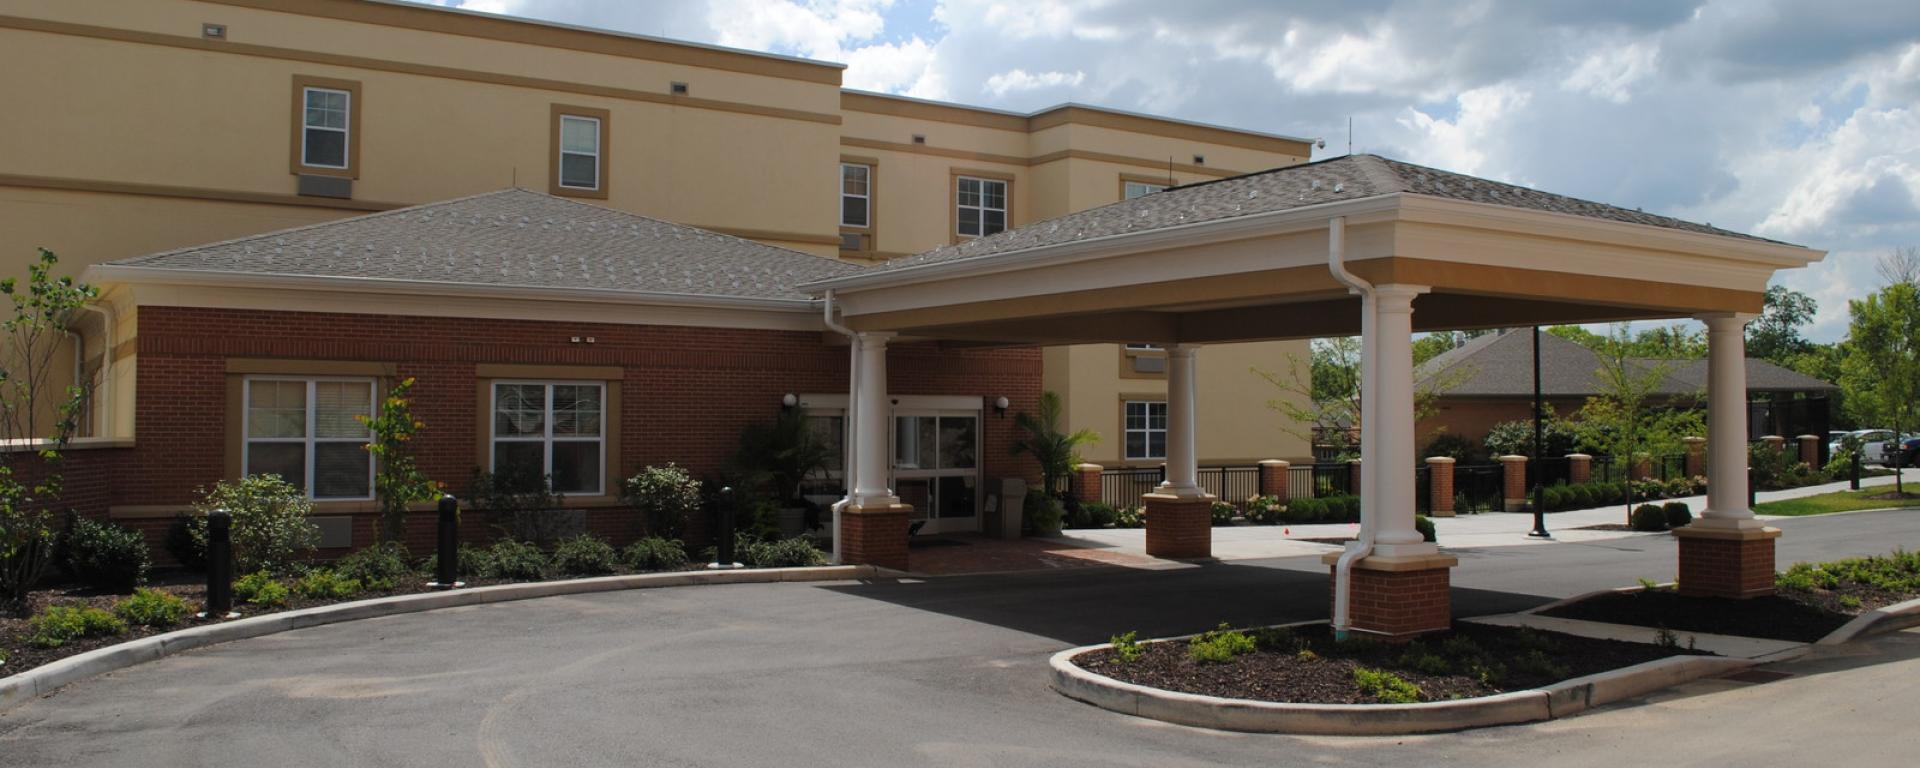 twin towers retirement community addition bayer becker civil